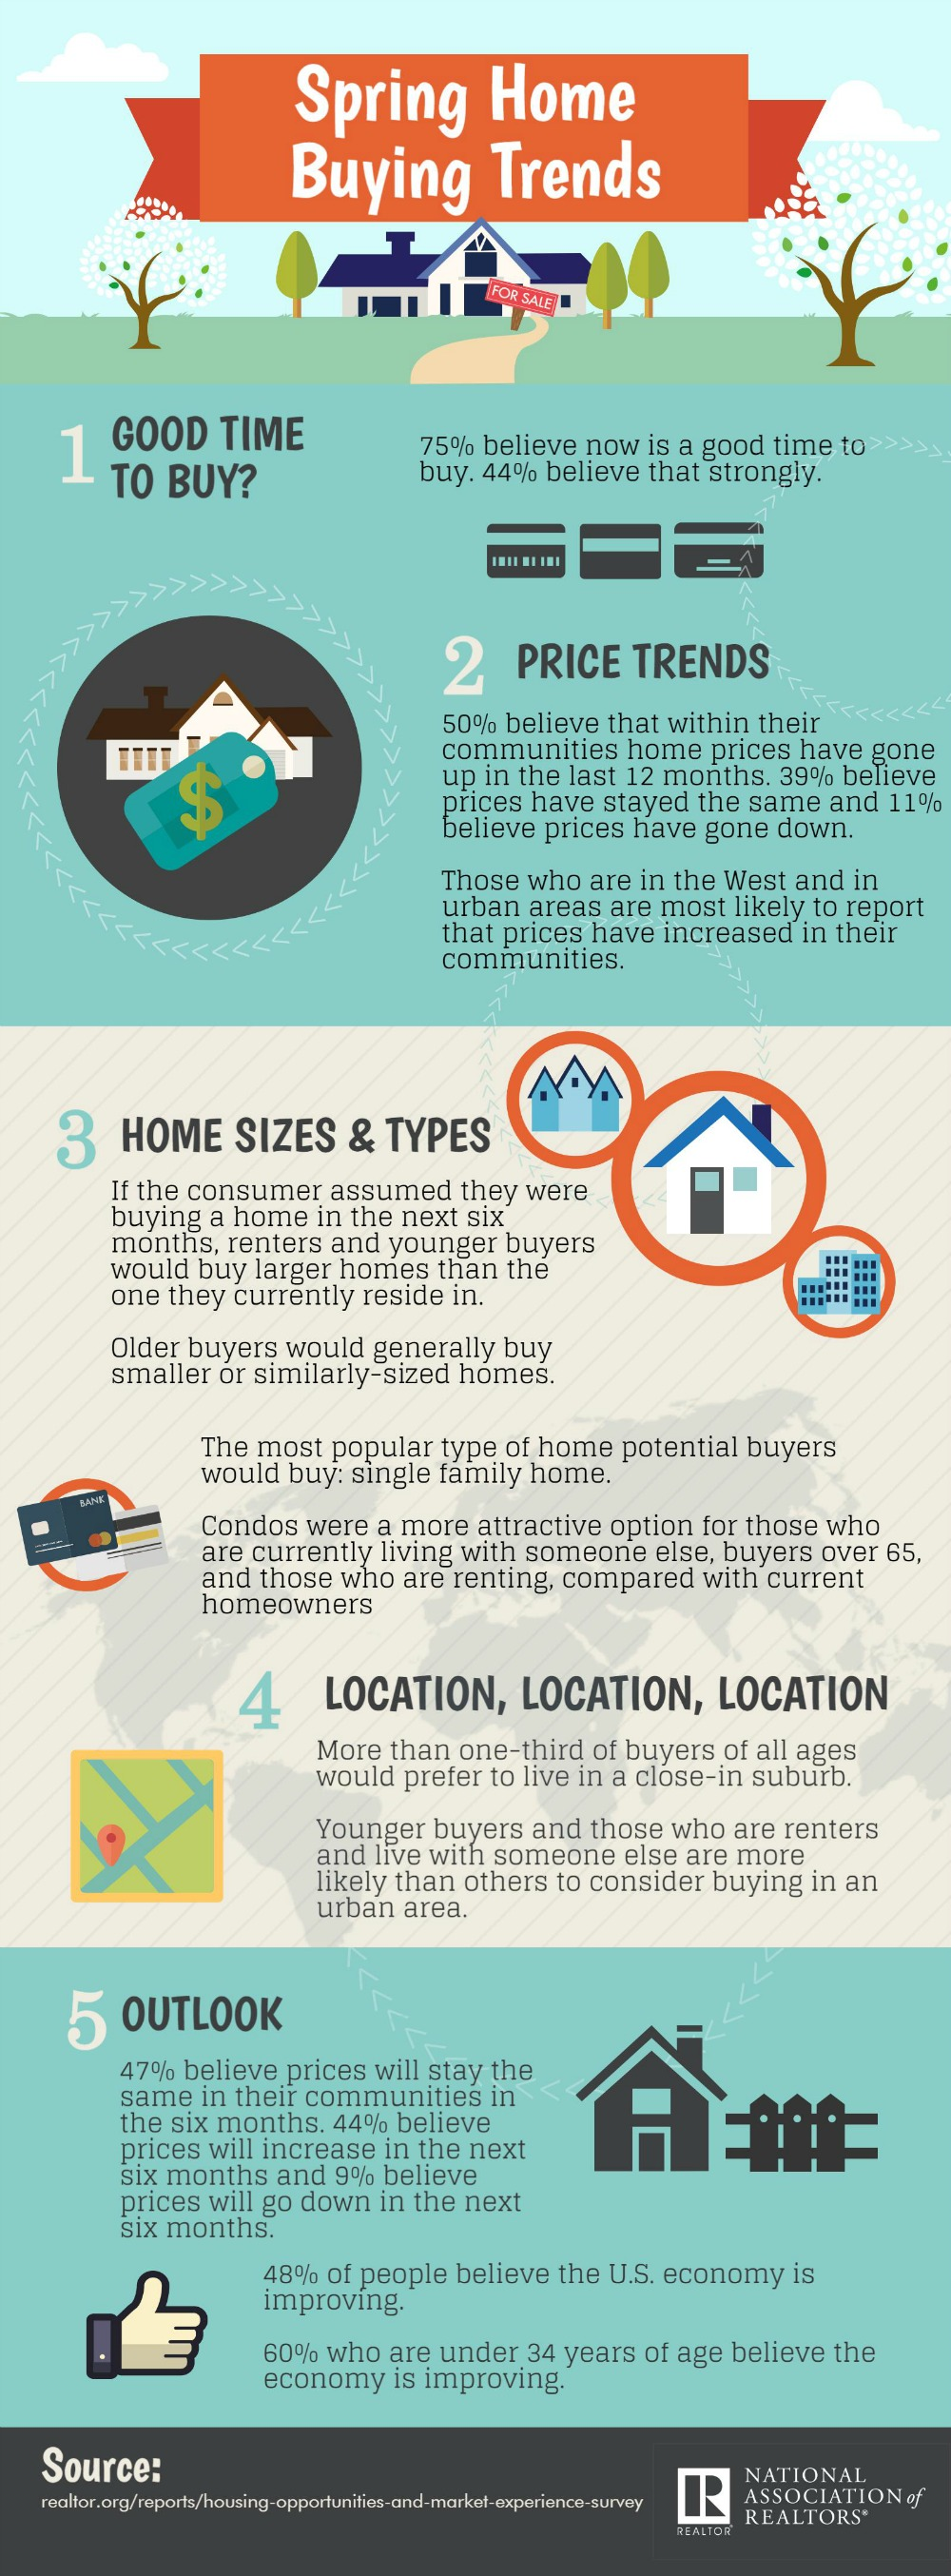 2016-spring-home-buying-trends-infographic-03-28-2016-full